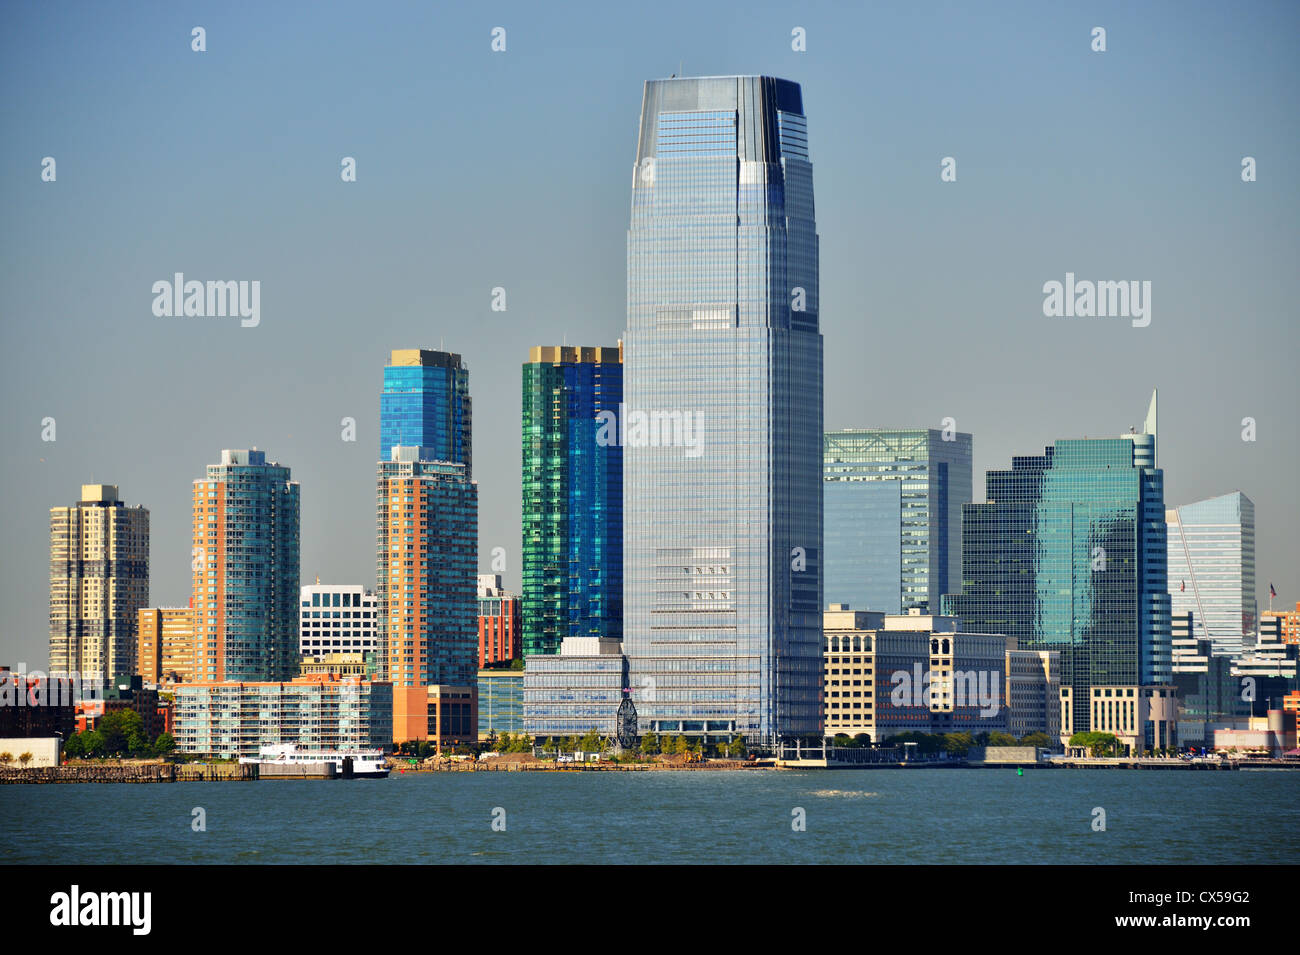 Skyline von Exchange Place in Jersey City, New Jersey, USA. Stockbild